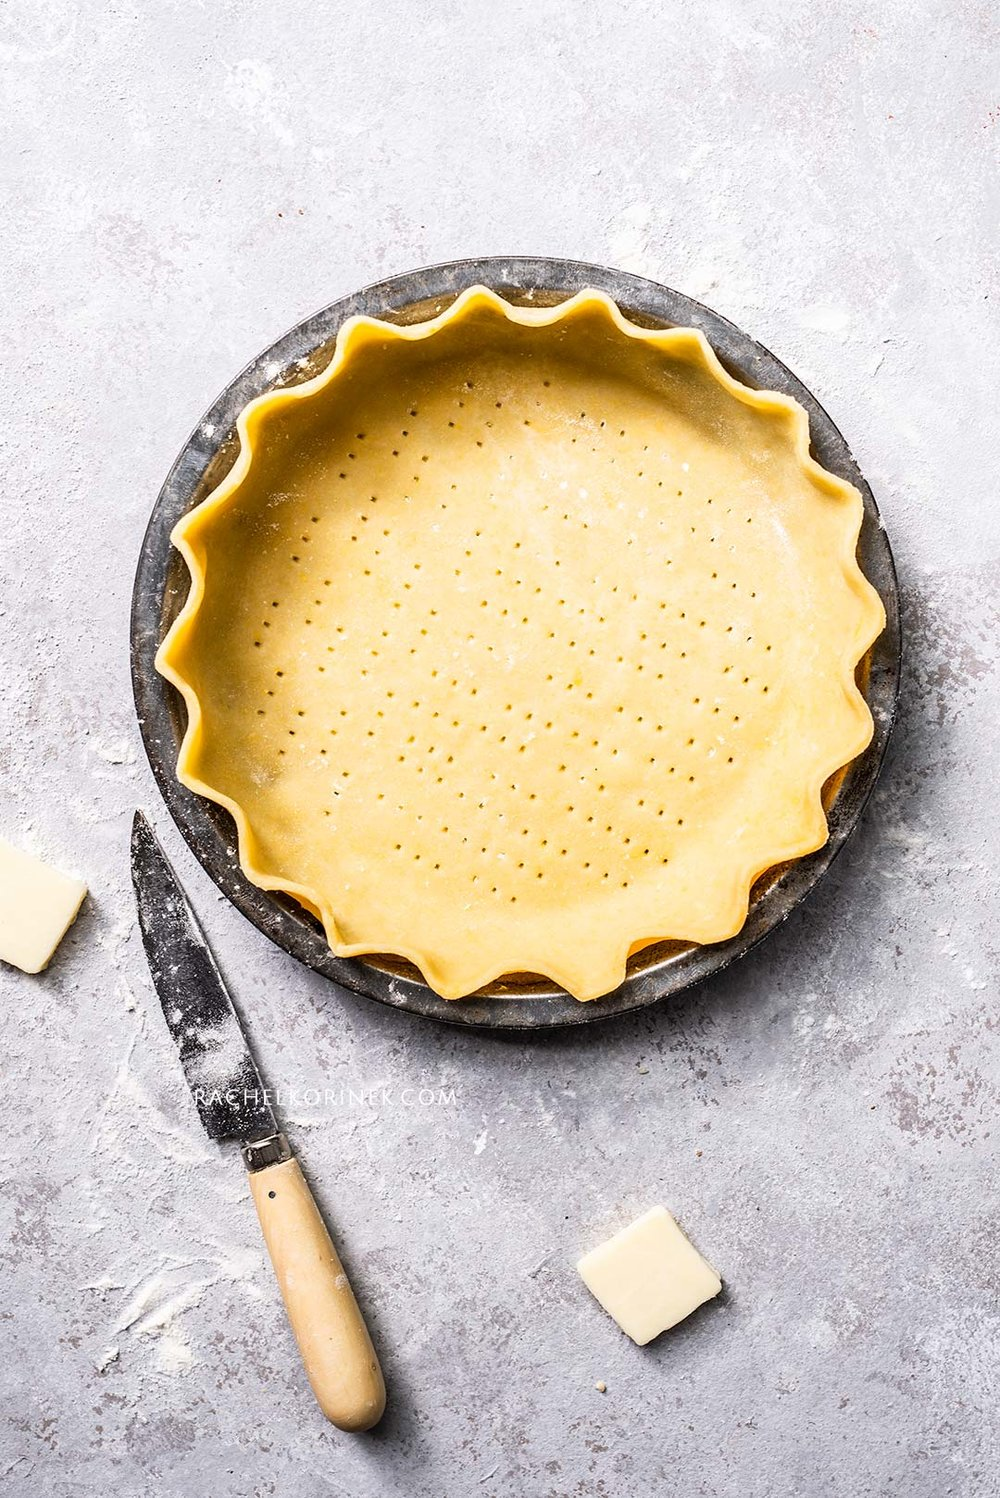 Rachel Korinek Pie + Galette Pastry Food Photography  Click to check out my latest food photography projects.  #twolovesstudio #beautifulcuisine #foodbloggerpro #foodphotography #learnfoodphotography #foodblogger #learnphotography #foodstyling #lightingtips #naturallight #foodphotographer